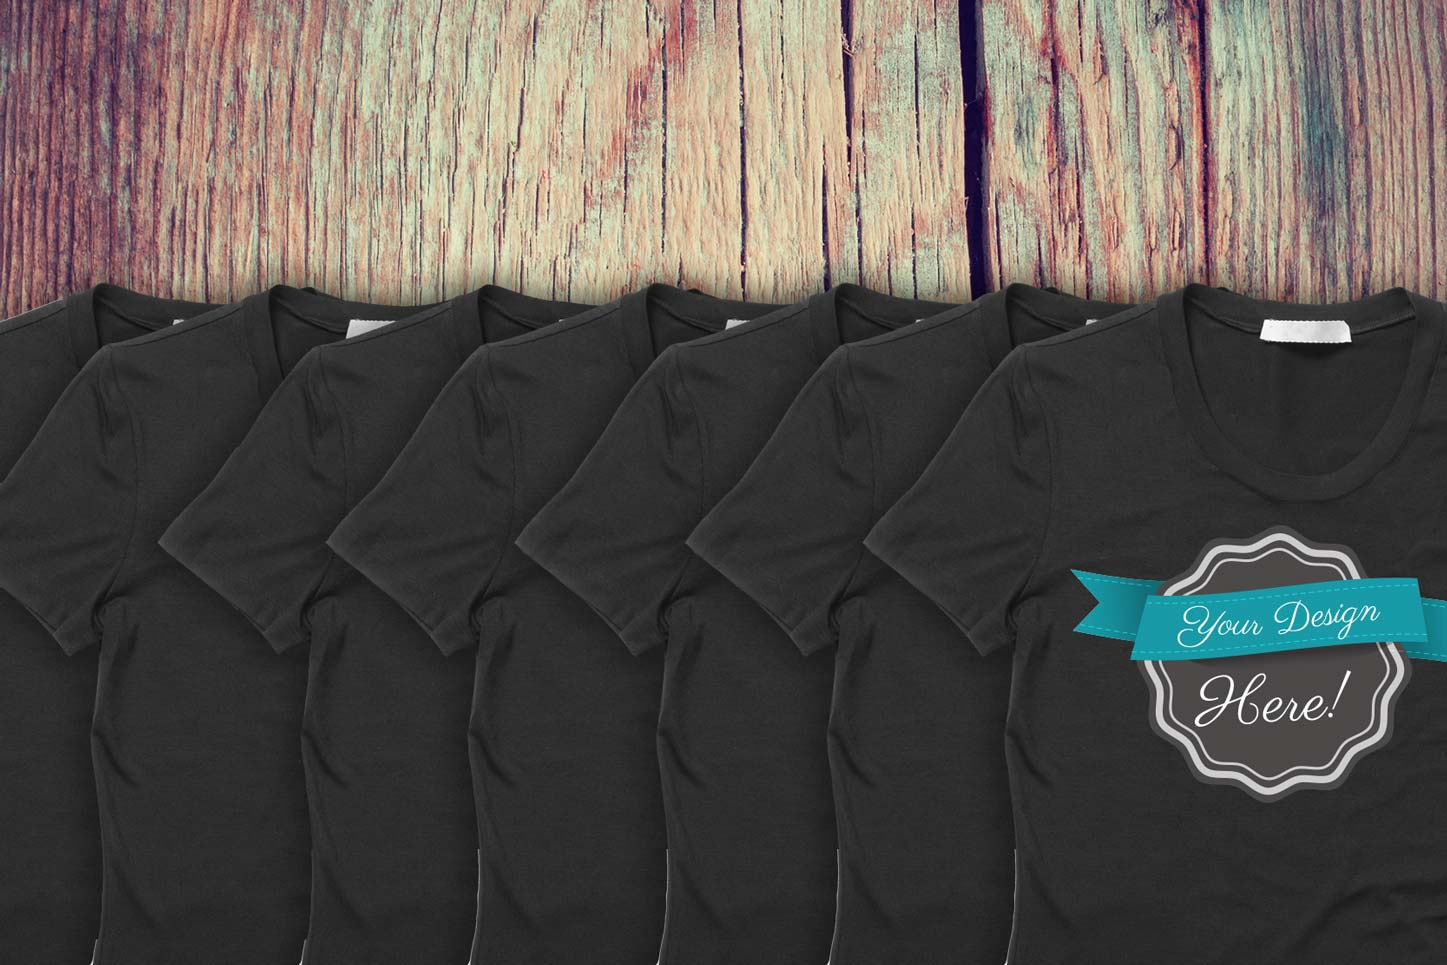 Design your own t shirt louisville ky - Custom T Shirts In Louisville And Kentuckiana